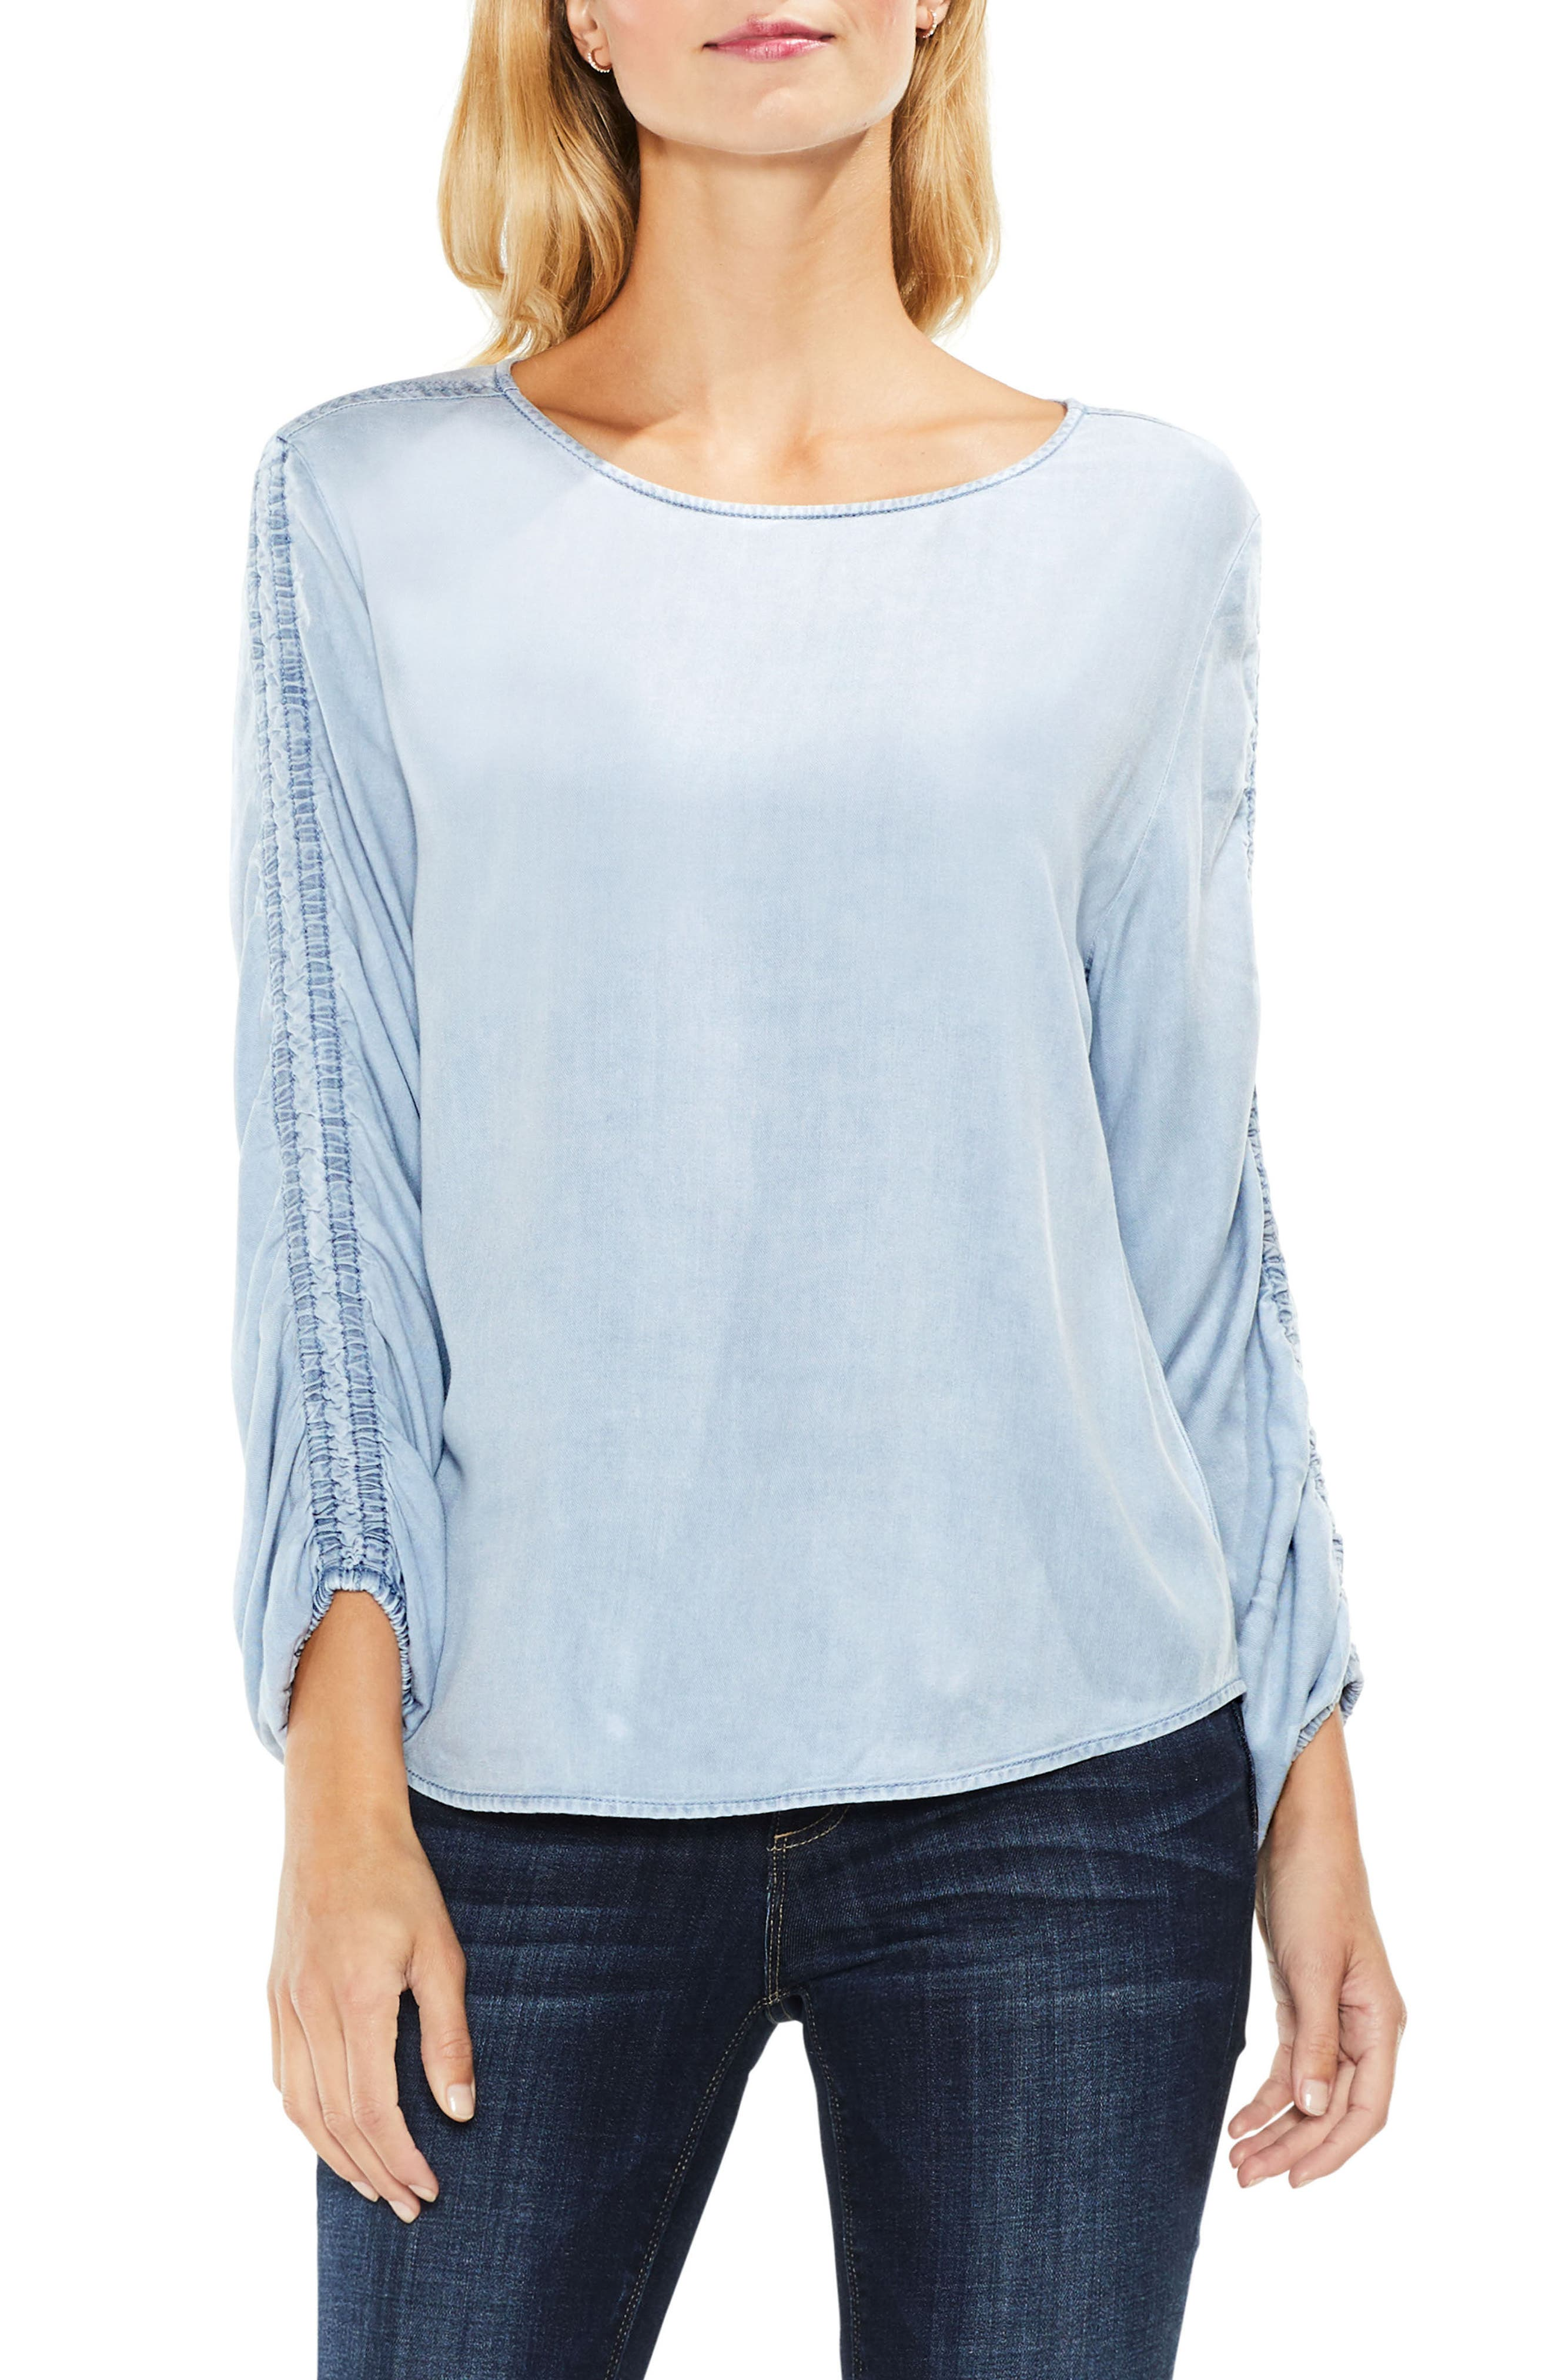 Main Image - Two by Vince Camuto Ruched Sleeve Pastel Fade Top